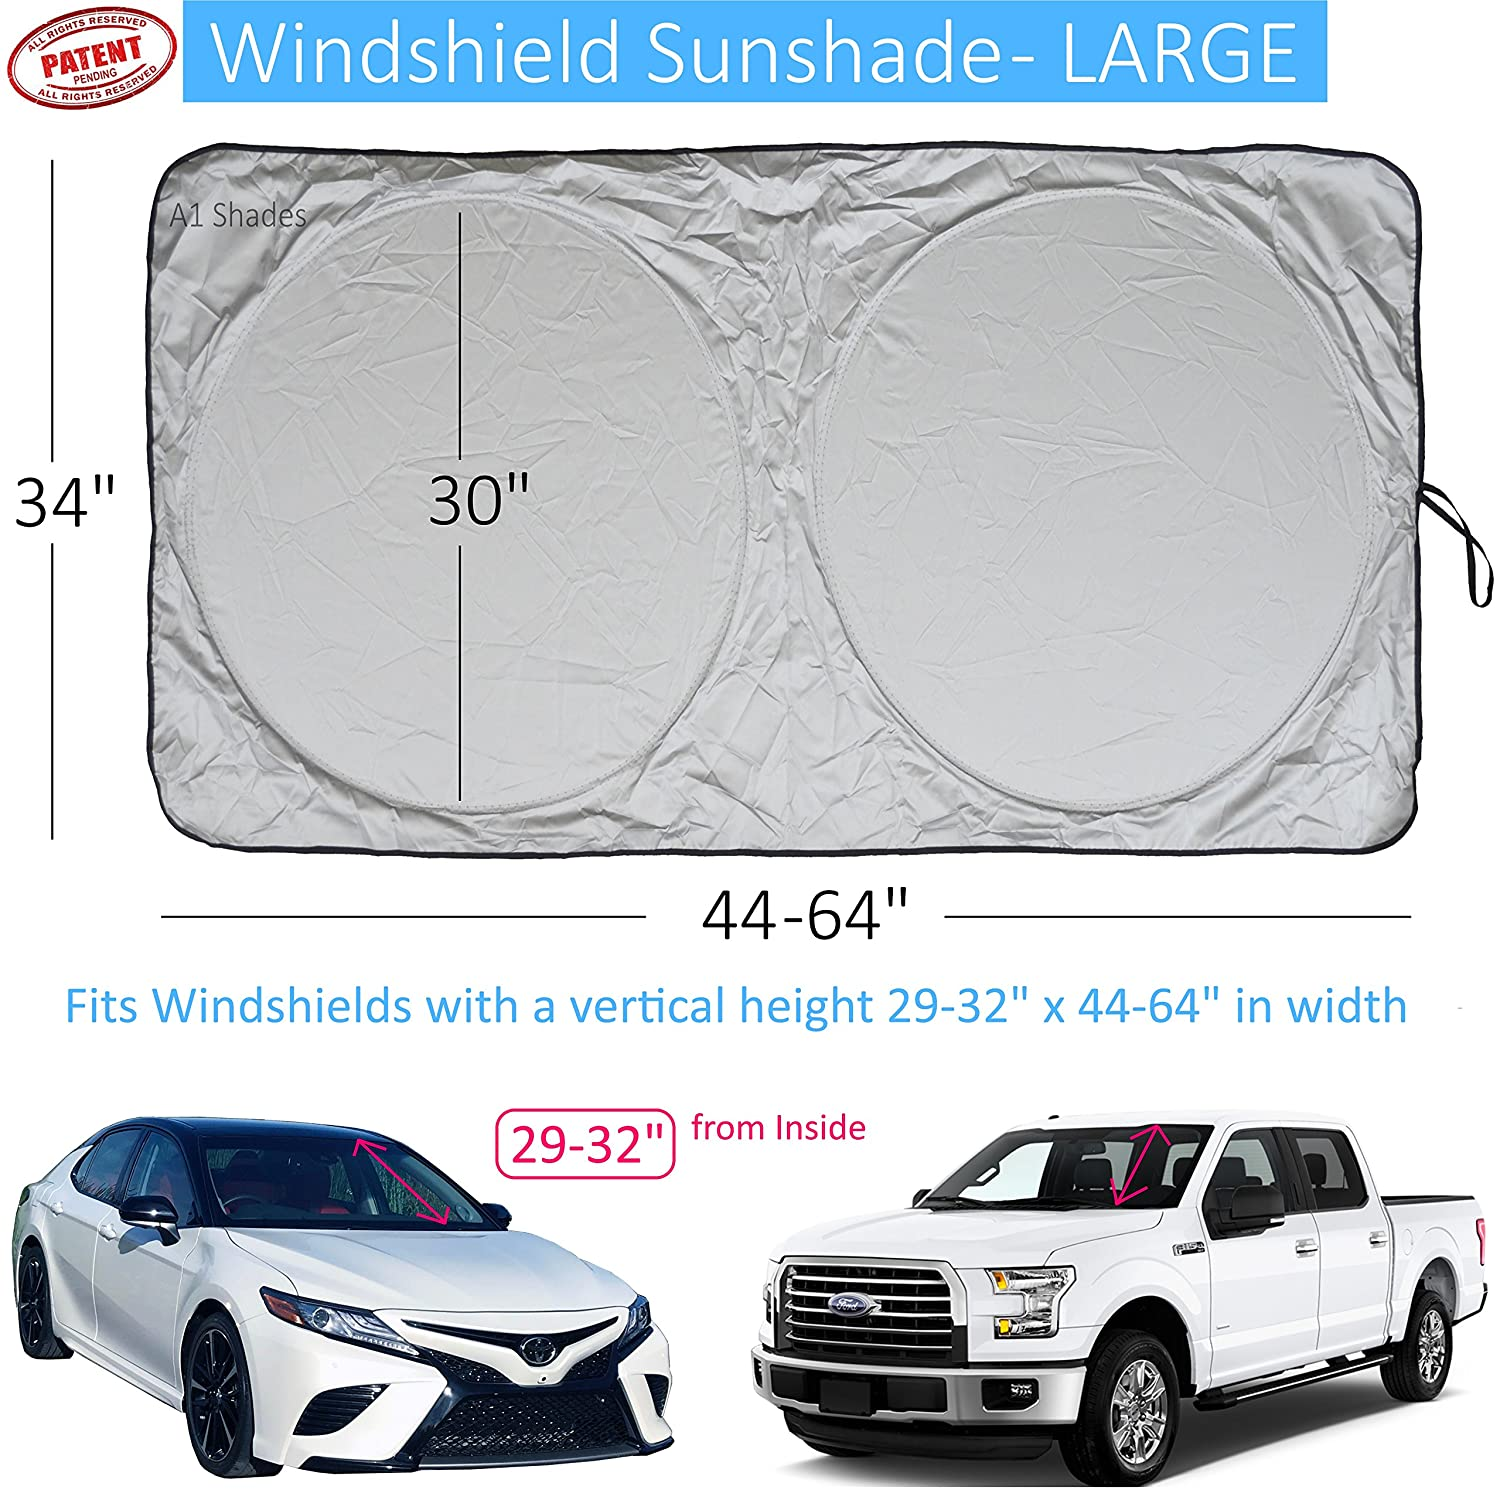 Windshield Sun Shade Suv Car Hassle Free Size Chart With Displaying 19gt Images For Johnny 5 Is Alive Your Vehicle Universal Quality 210t Keep Accessories Cool Uv And Heat